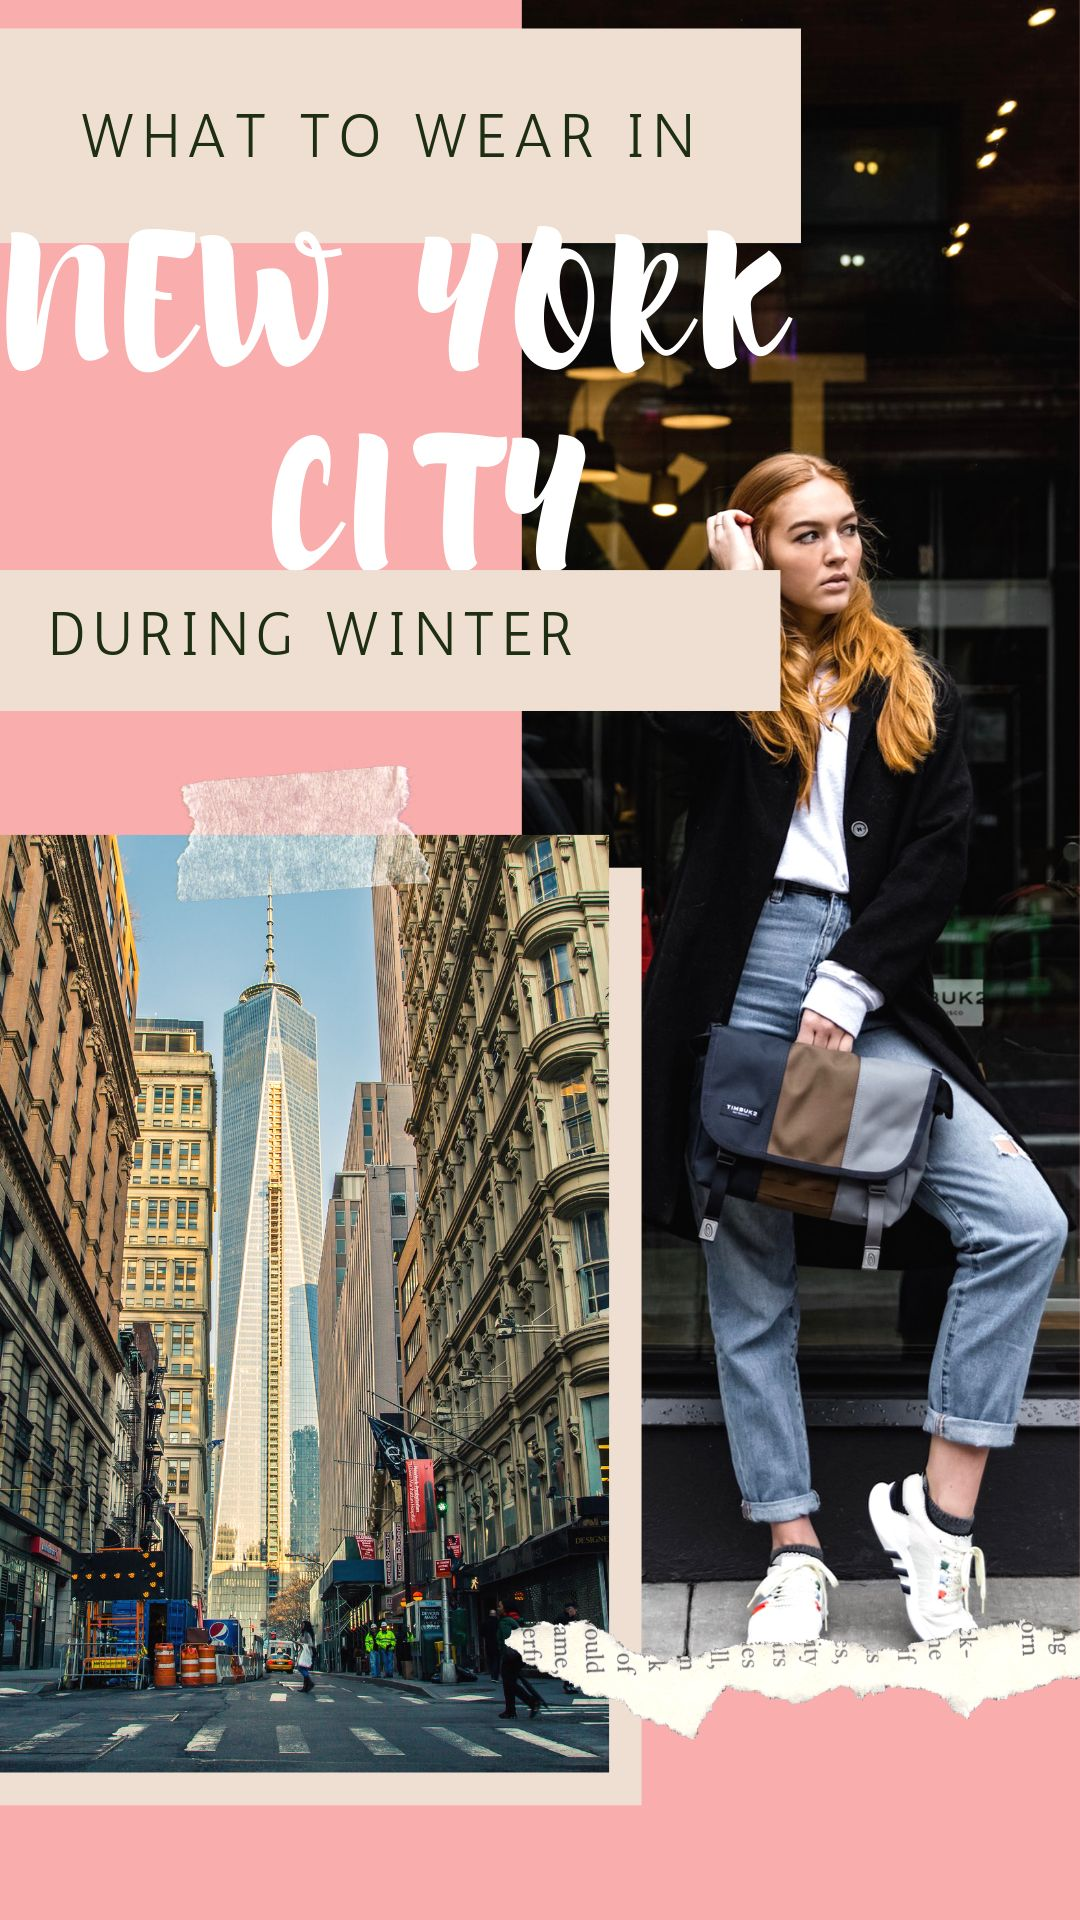 Winter Packing Guide For New York City